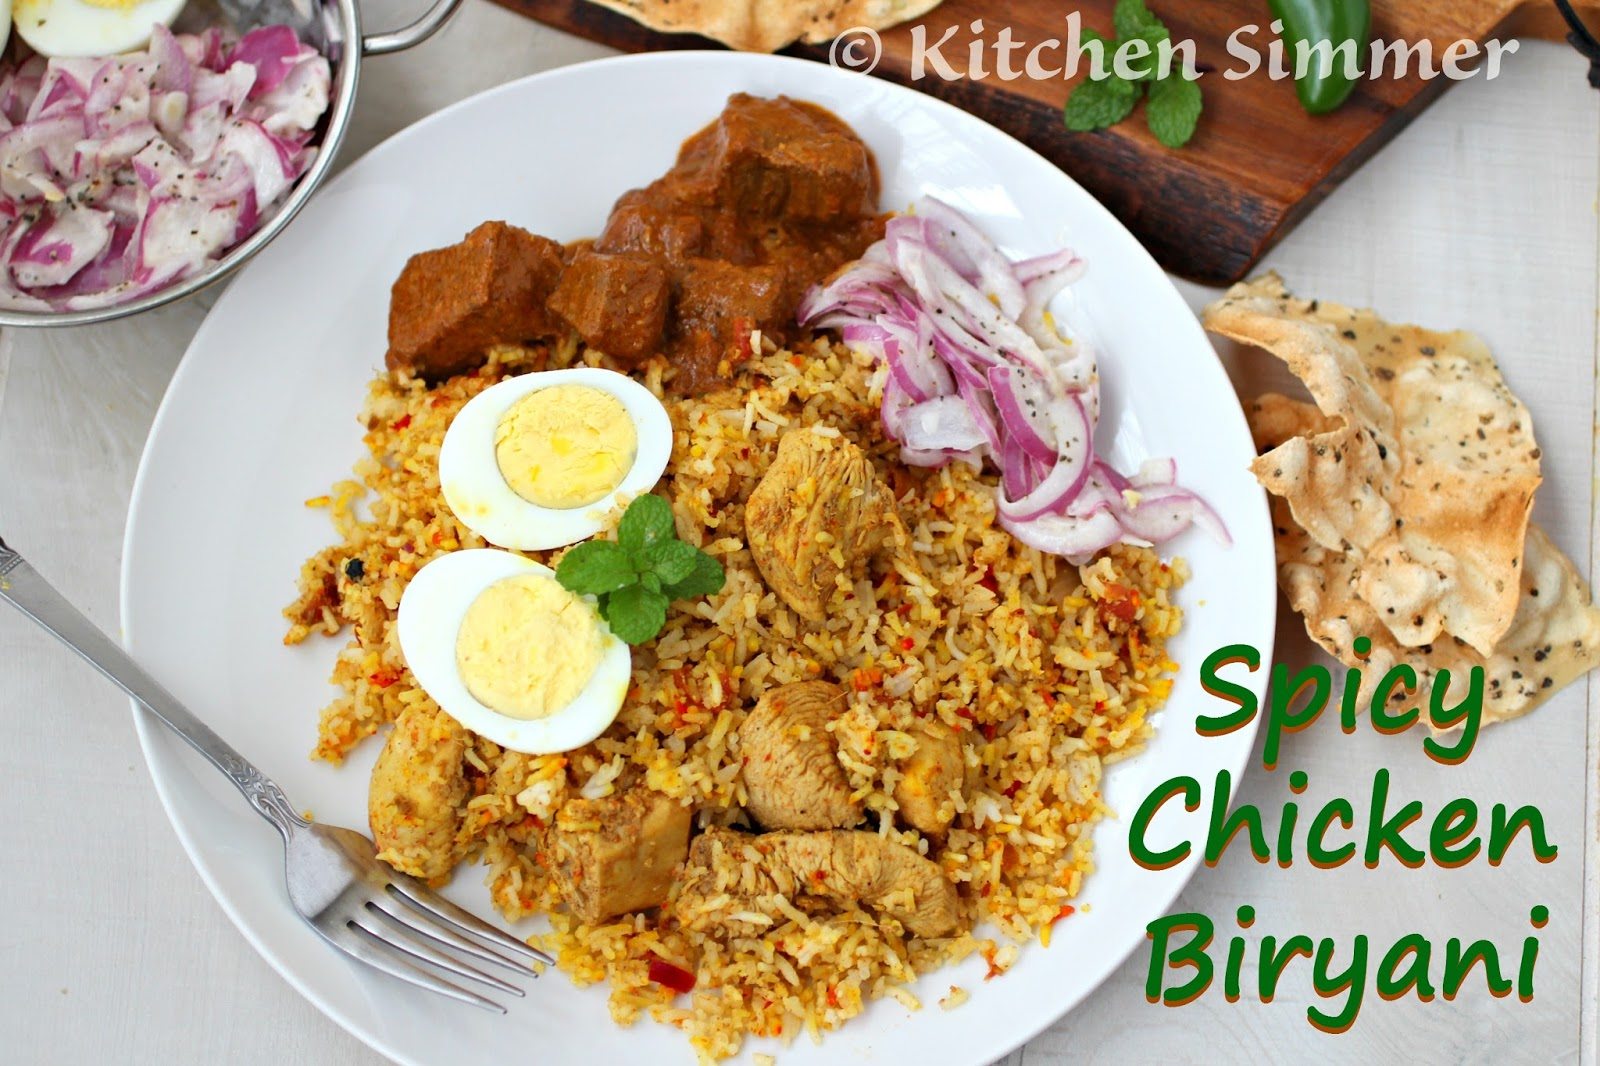 Kitchen Simmer Spicy Chicken Biryani